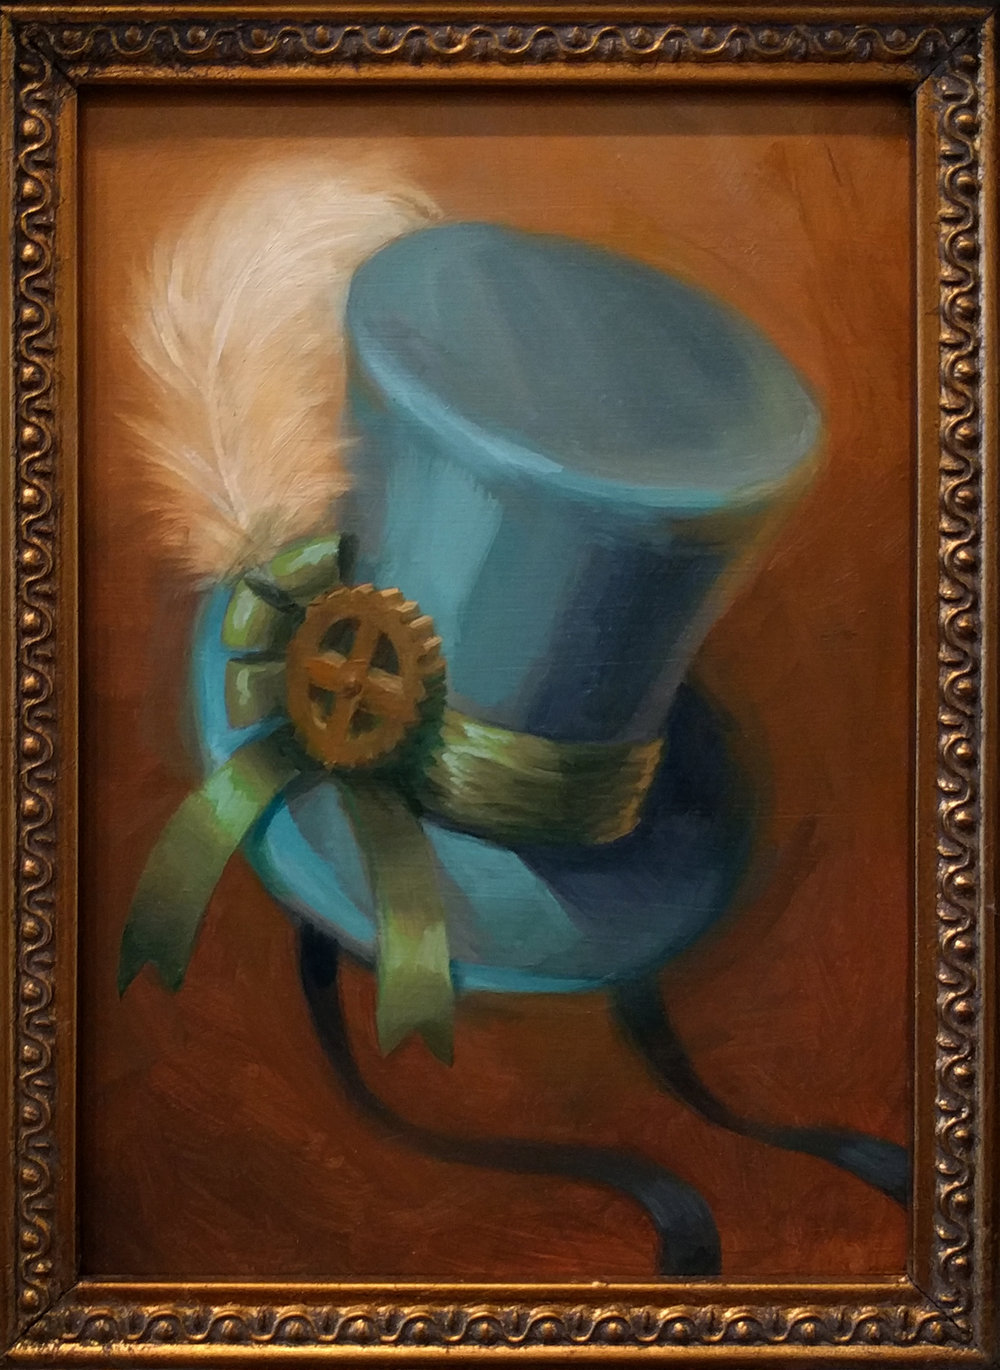 Top Hat: Teal